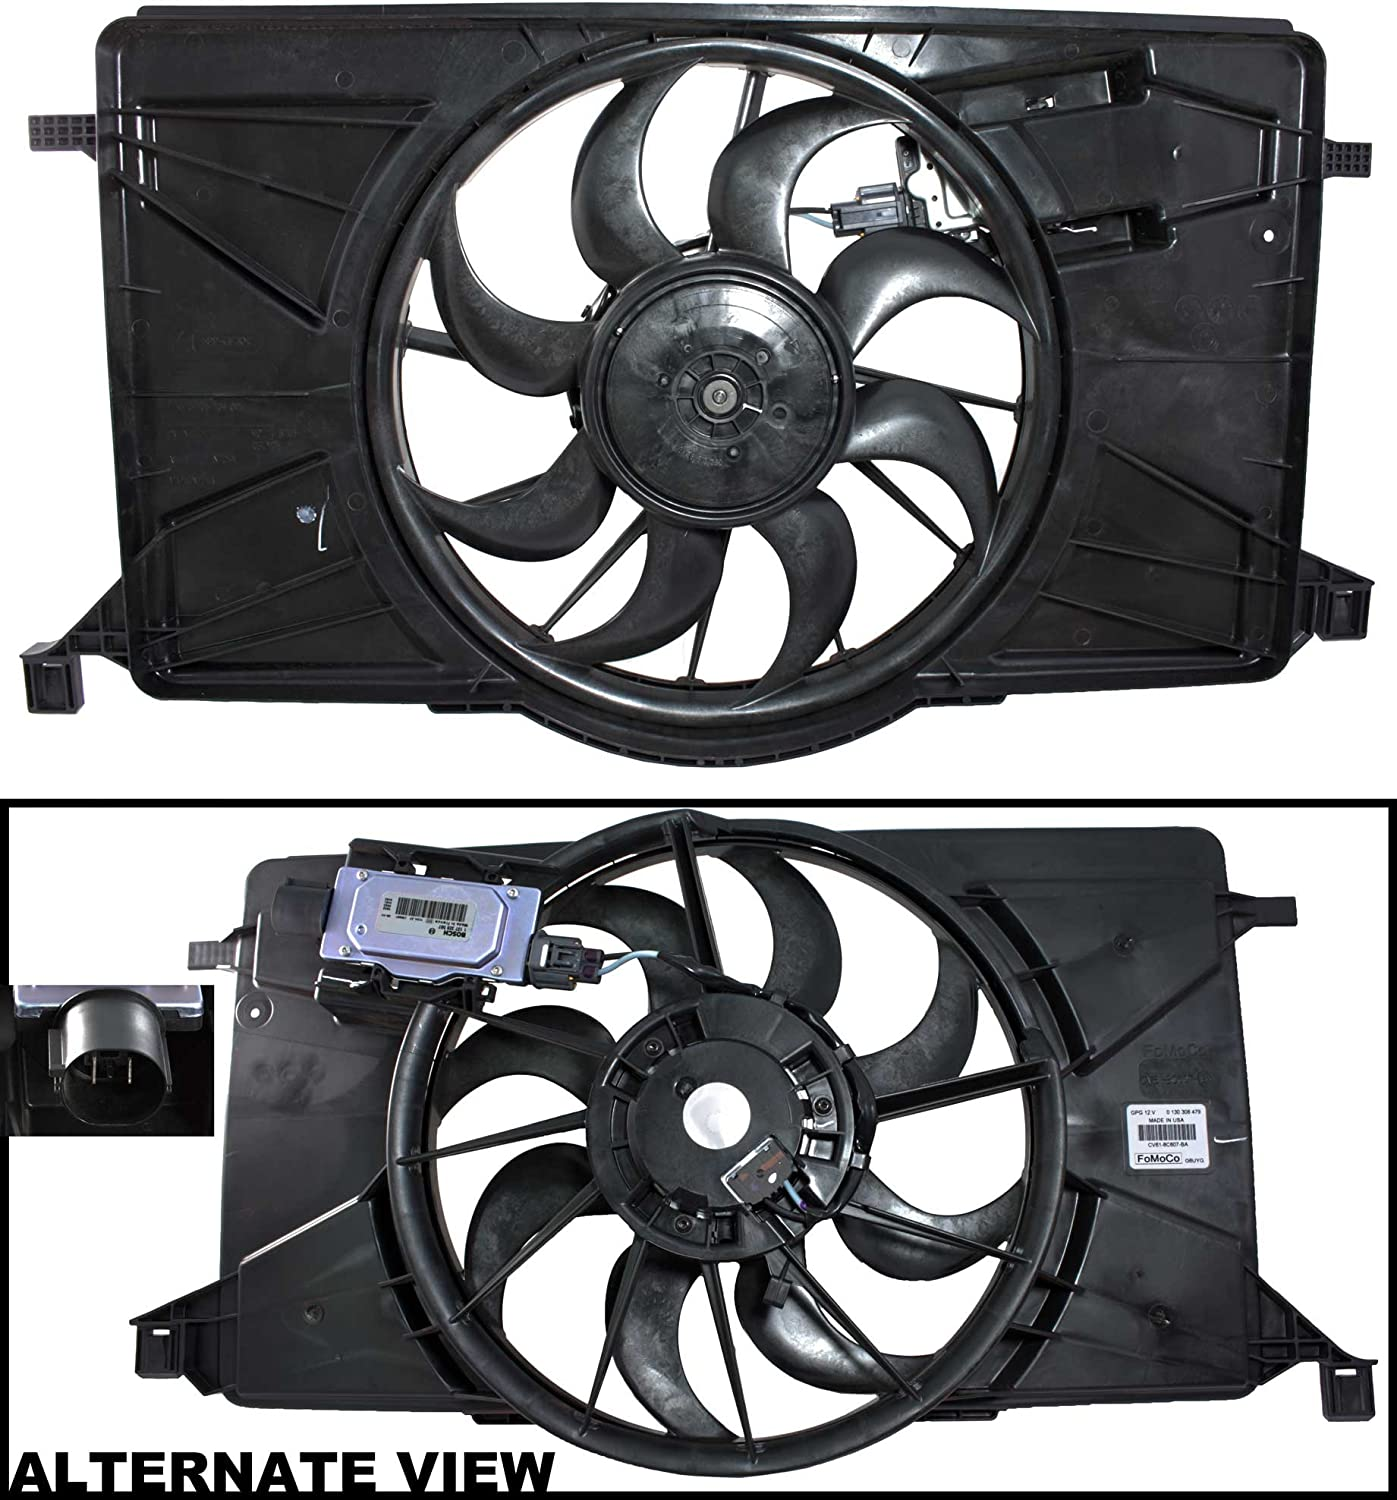 APDTY BV6Z8C607K Radiator Cooling Fan Assembly Fits 2012-2017 Ford Focus Non-Turbo (Includes Fan Control Module, Electric Motor, Shroud (Replaces Ford RF396, RF276, BV6Z8C607K)